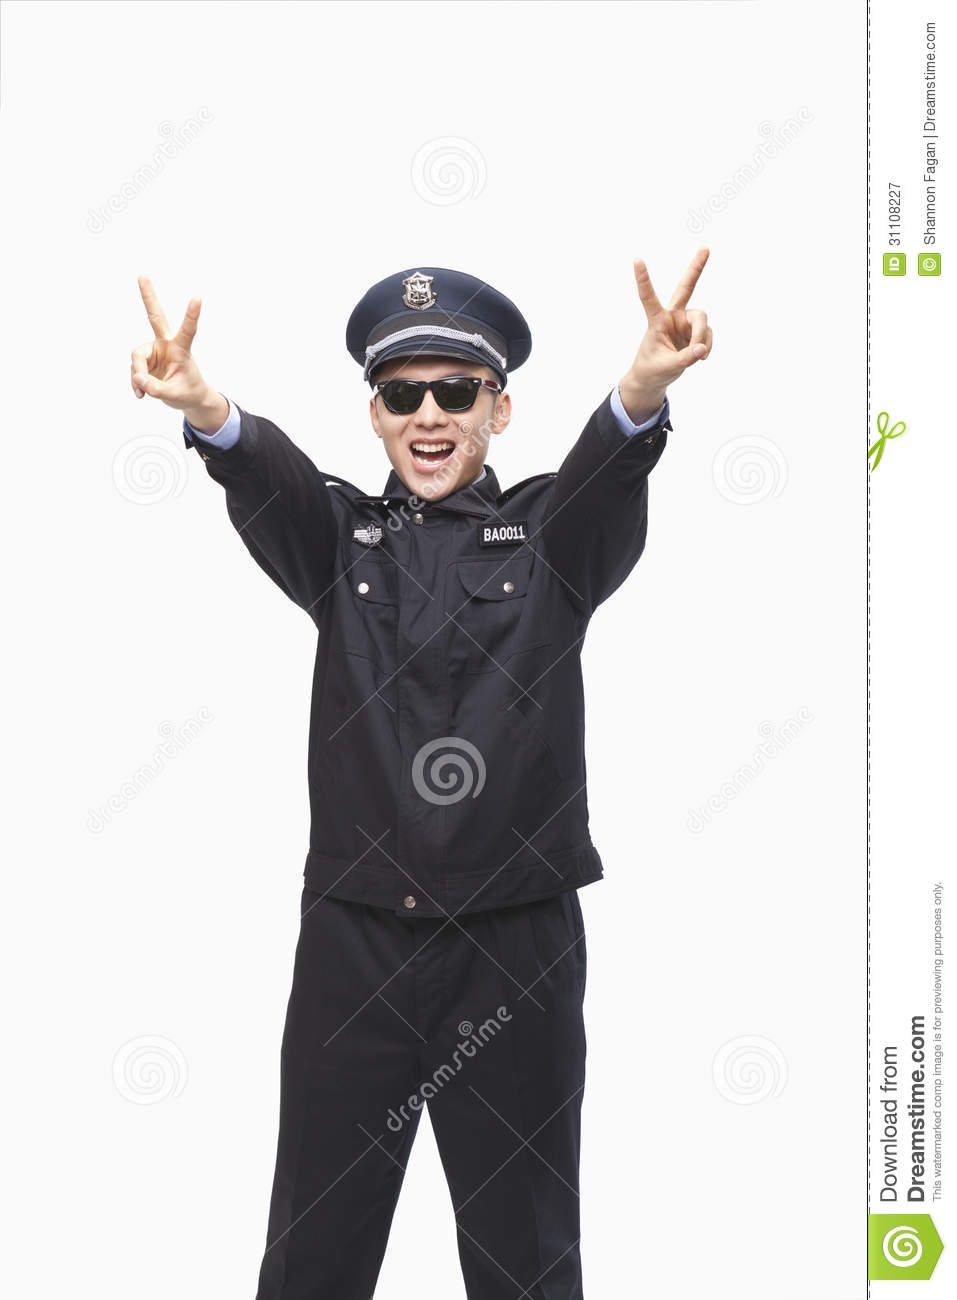 Royalty Free Stock Photography: Happy Police Officer Giving Peace Sign ...